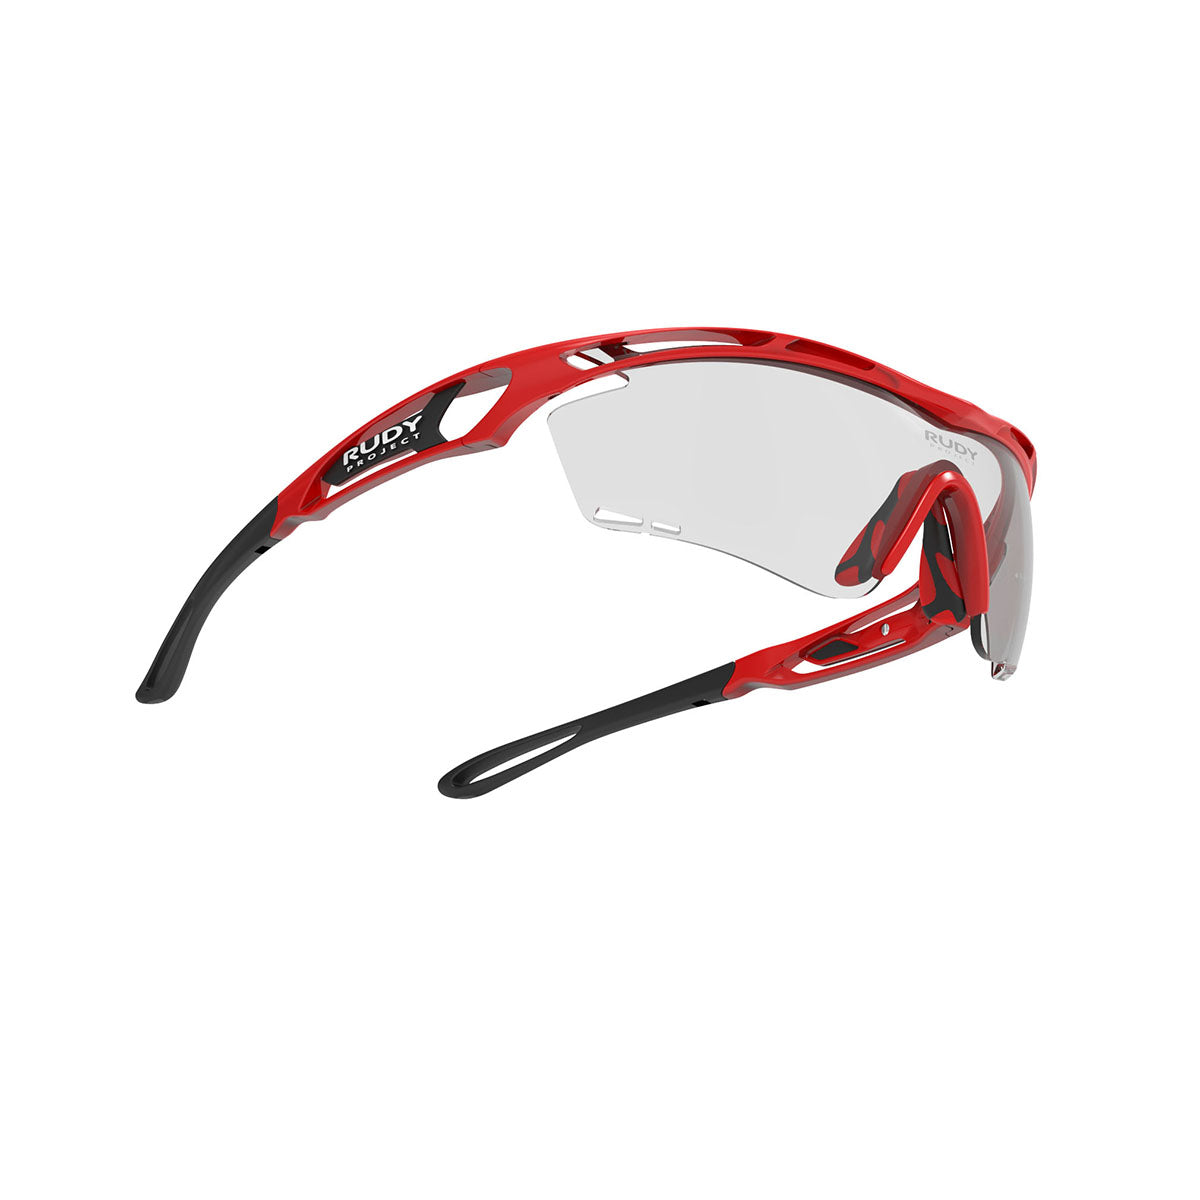 Rudy Project - Tralyx - frame color: Fire Red Gloss - lens color: ImpactX-2 Photochromic Clear to Black - photo angle: Bottom Front Angle Variant Hover Image